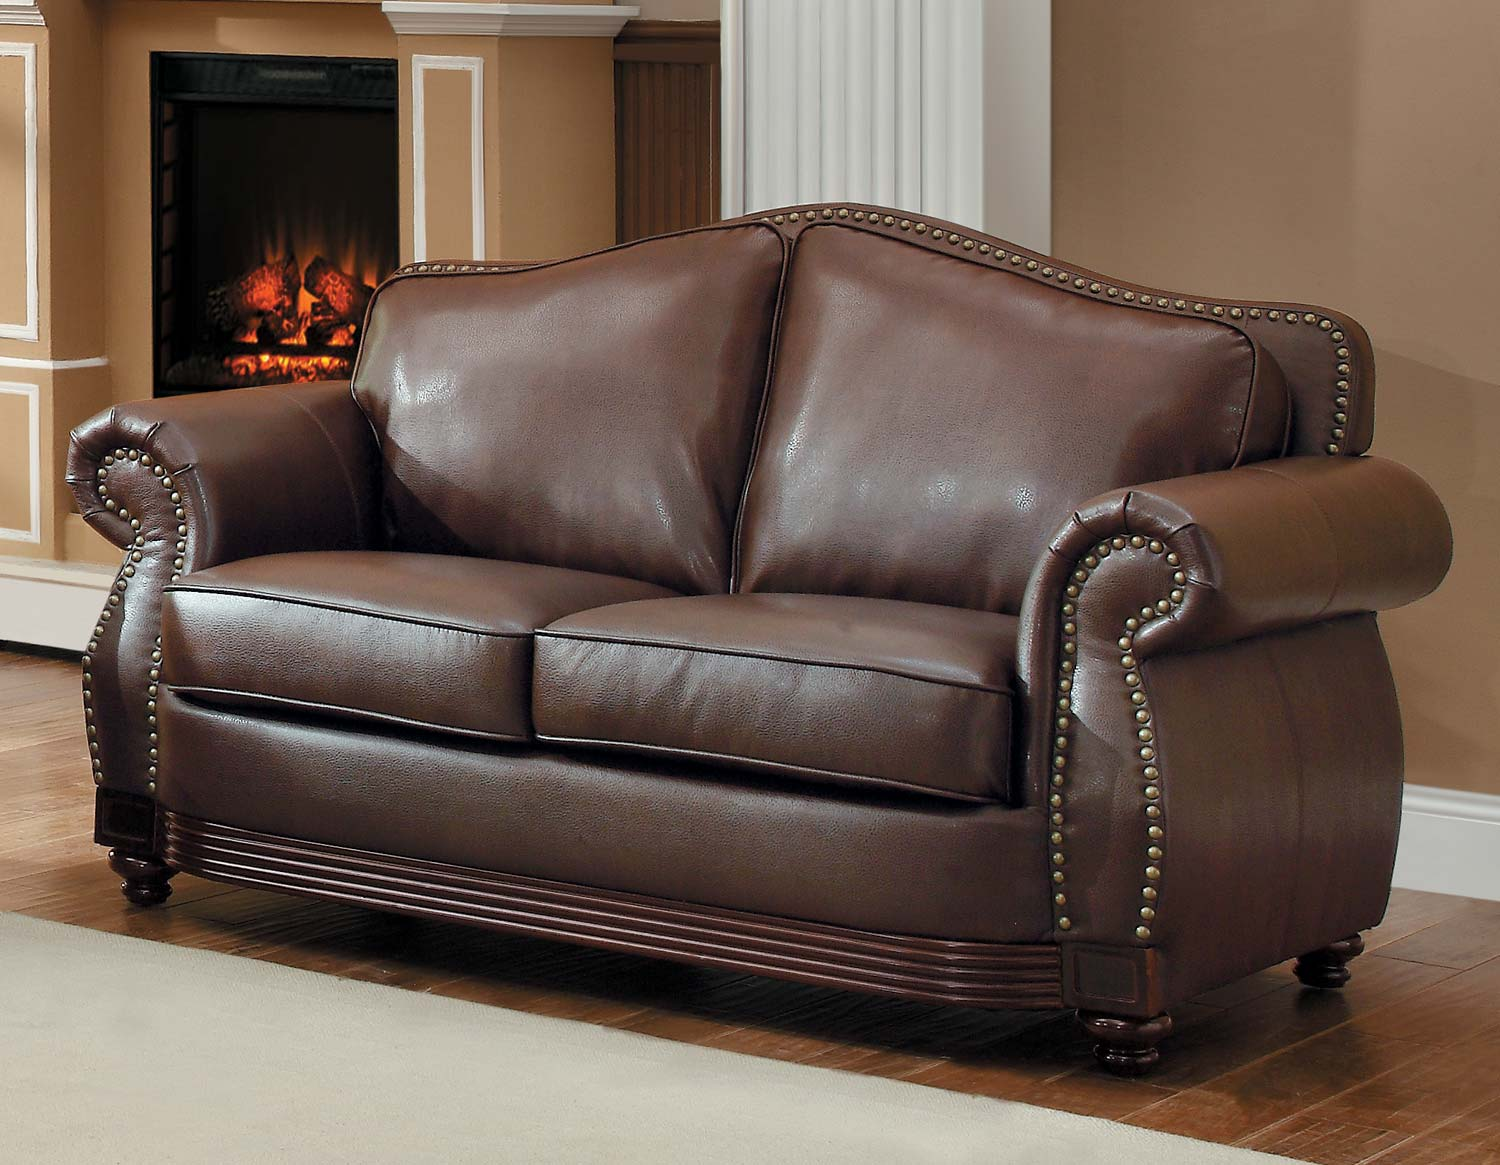 Homelegance Midwood Brown Loveseat Dallas Tx Living Room Loveseat Furniture Nation